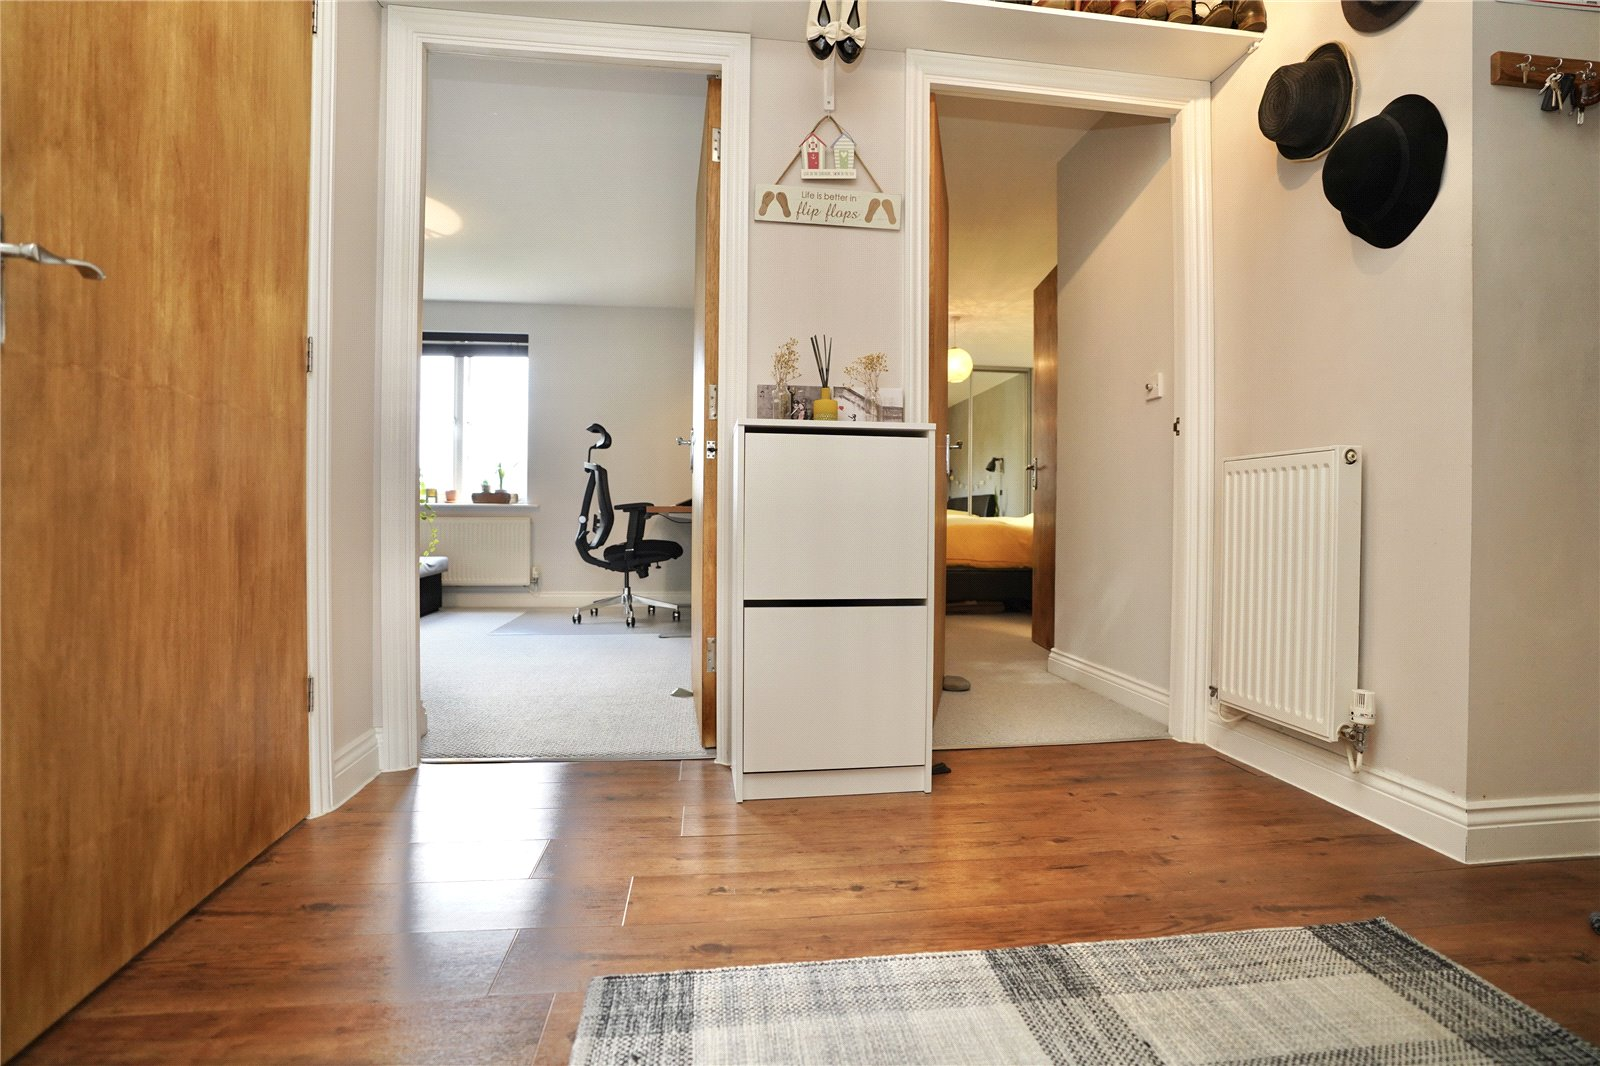 2 bed apartment for sale in St. Ives, PE27 5QL 5